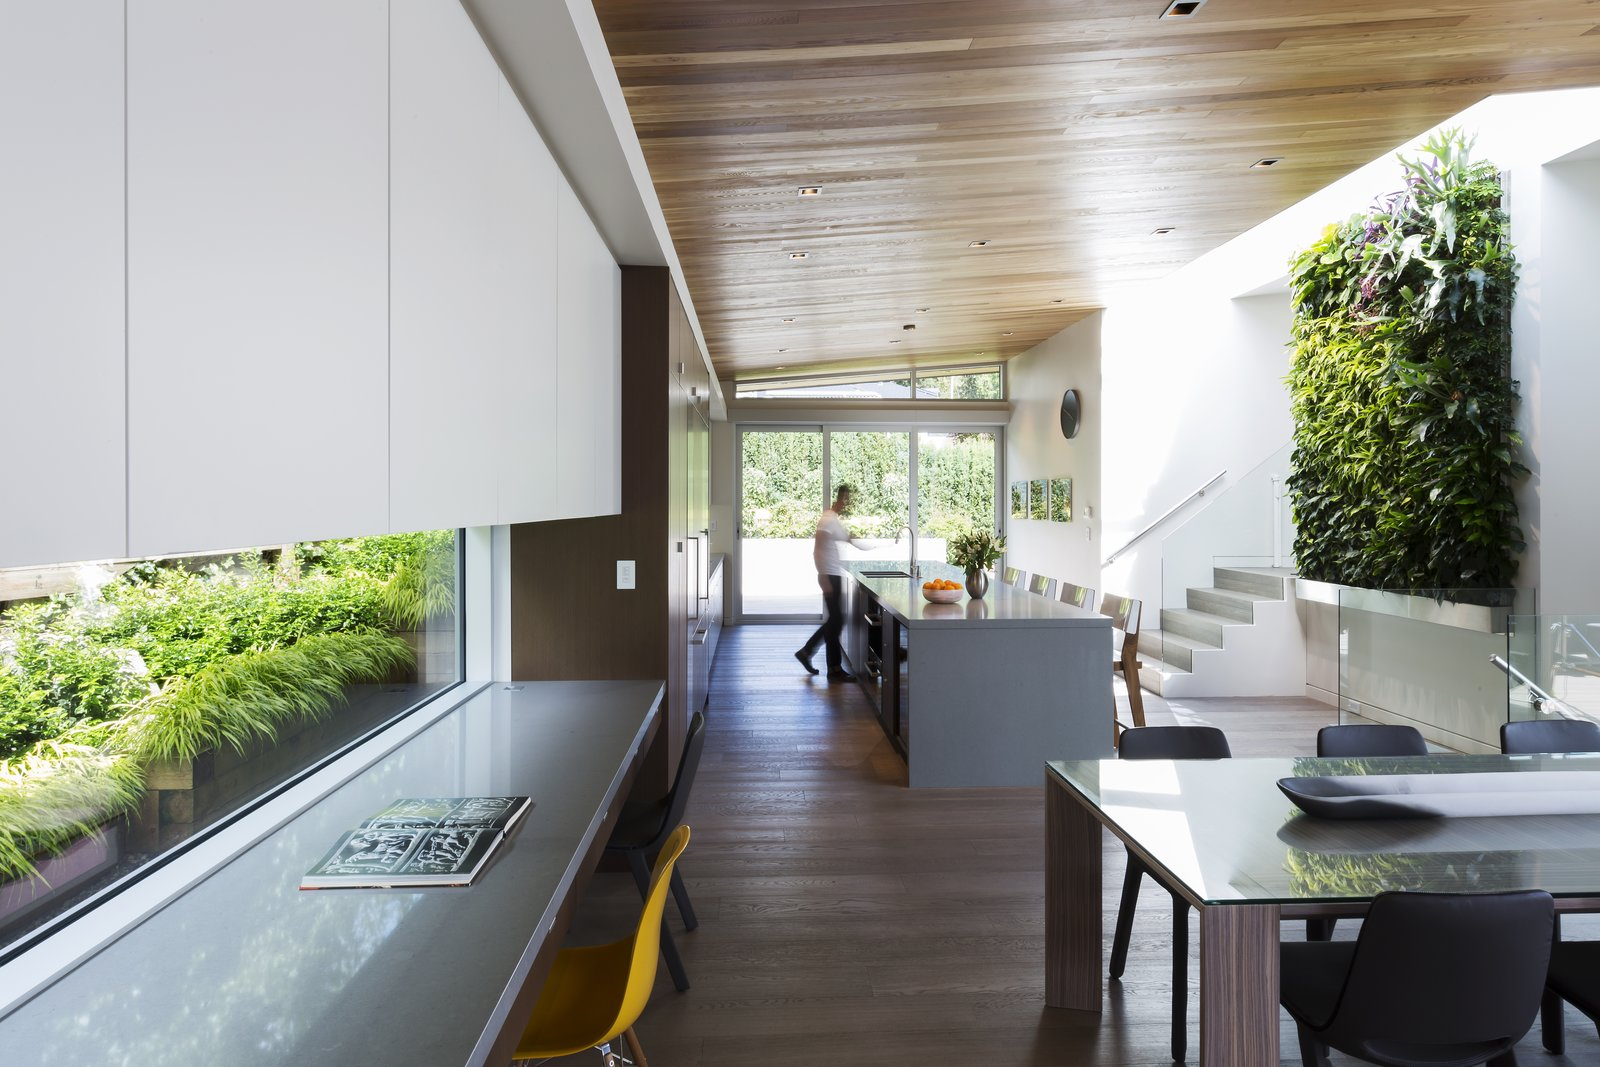 Garden Wall Residence, kitchen and dining  Garden Wall Residence by Garret Cord Werner